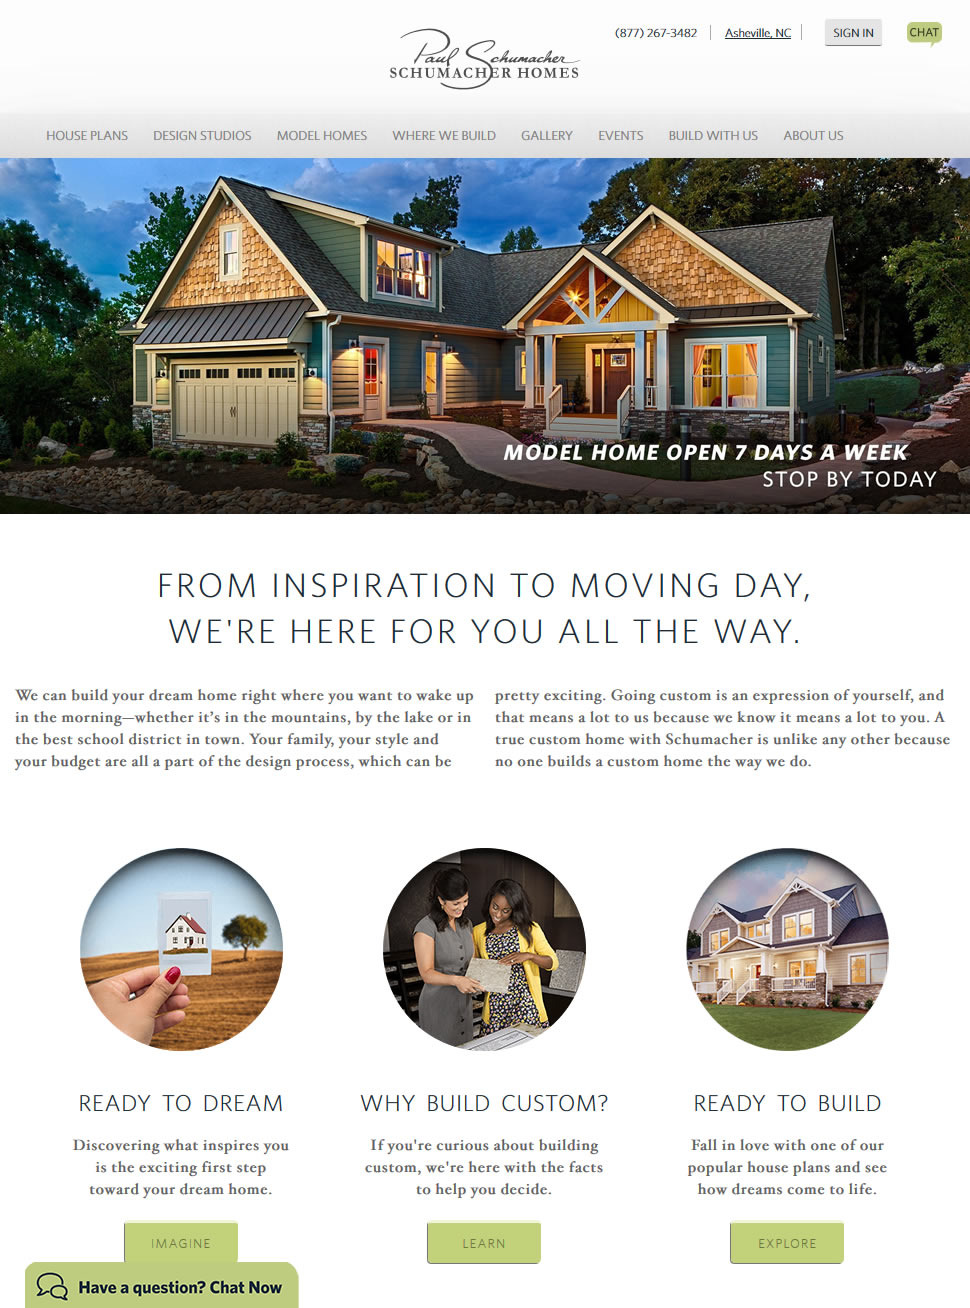 Schumacher Homes website